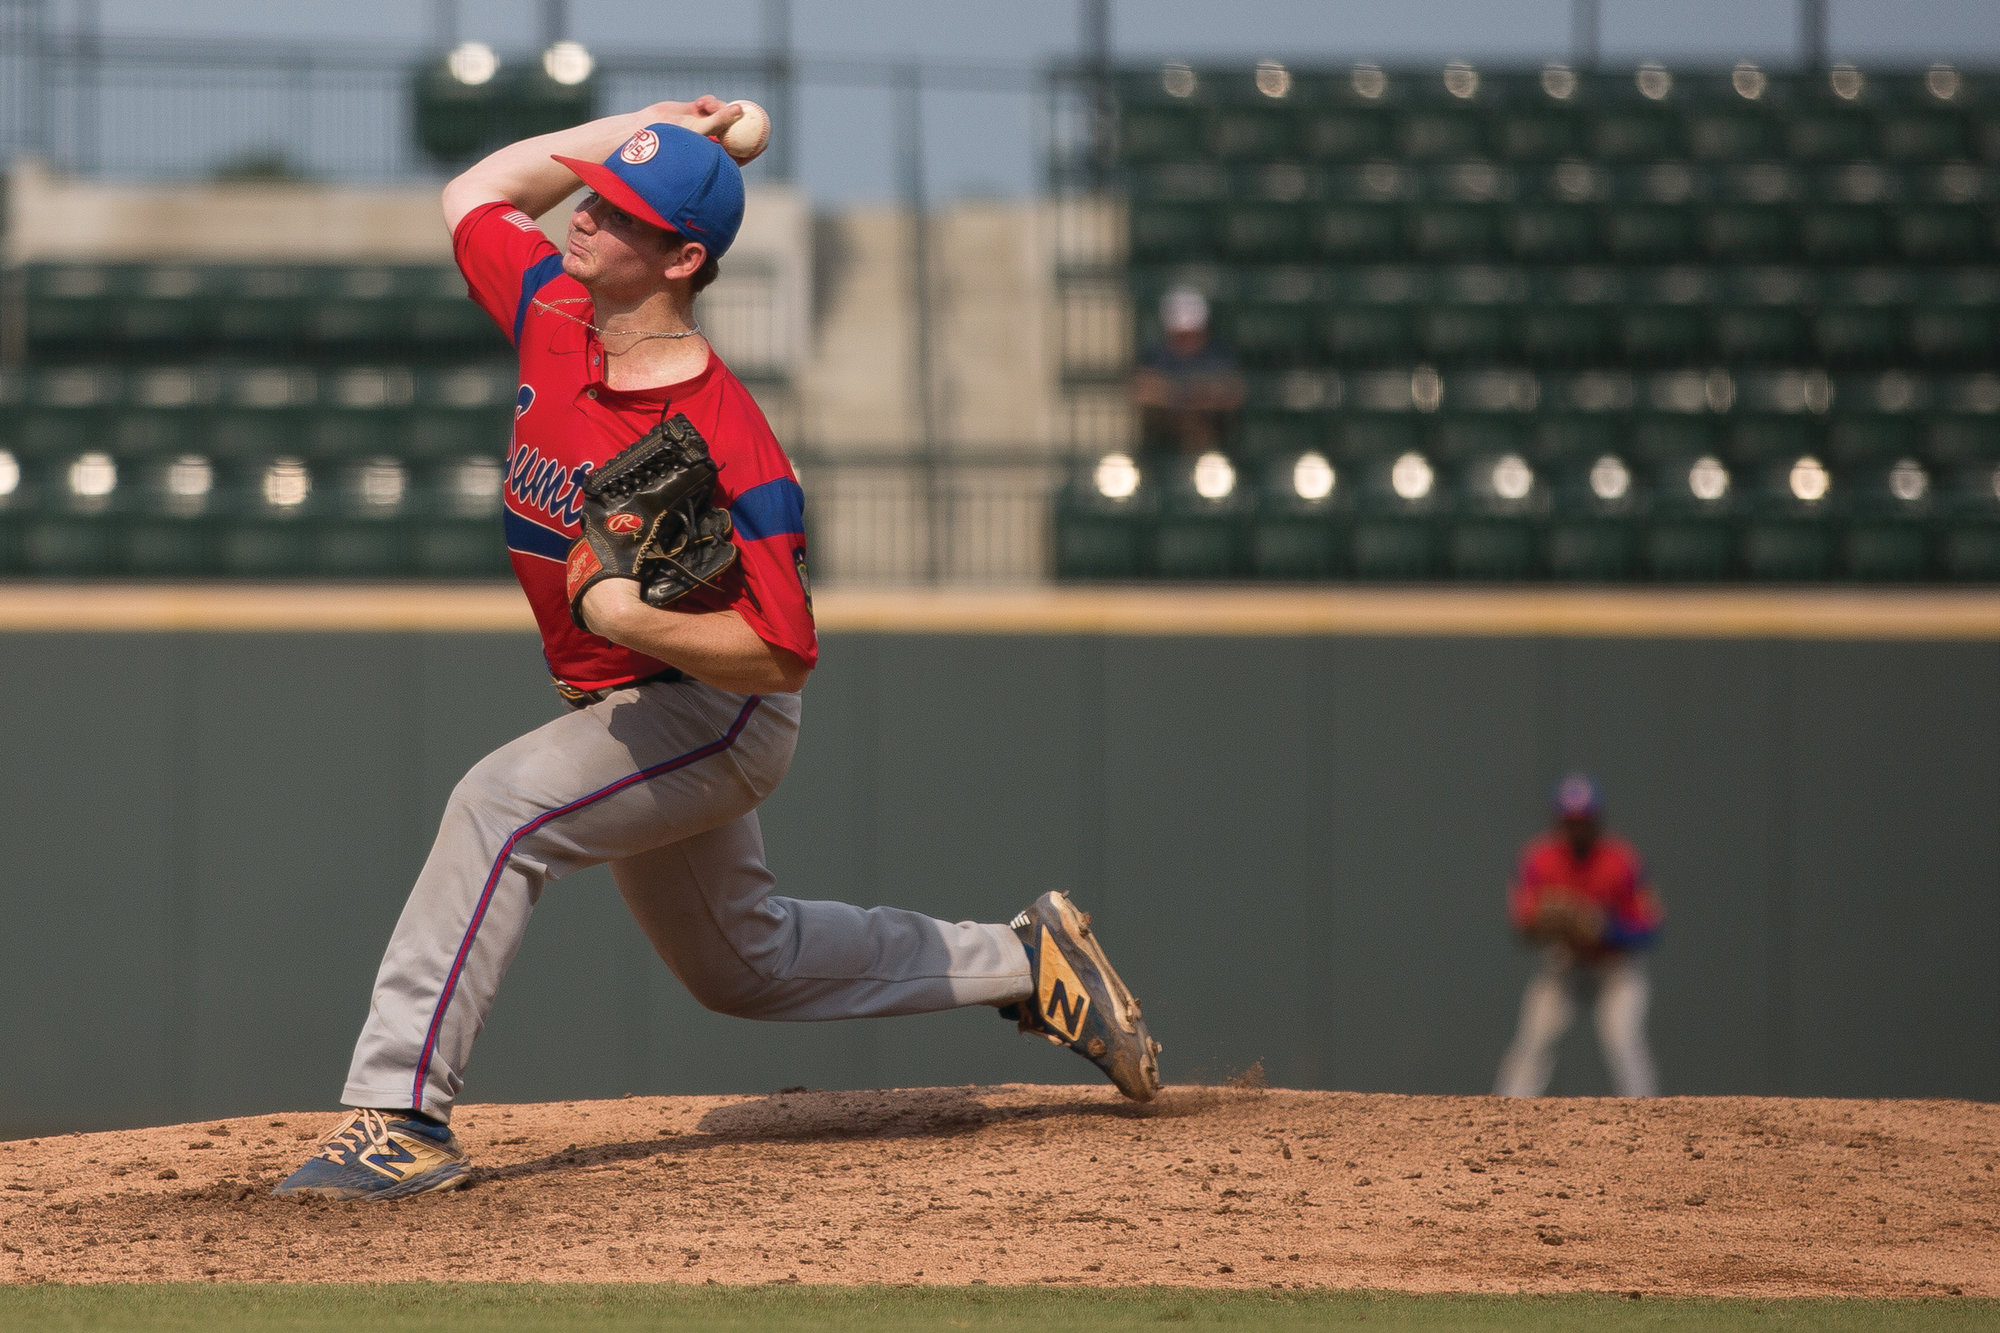 Jacob Holladay delivers a pitch in the P-15's 2-0 loss on Wednesday night.